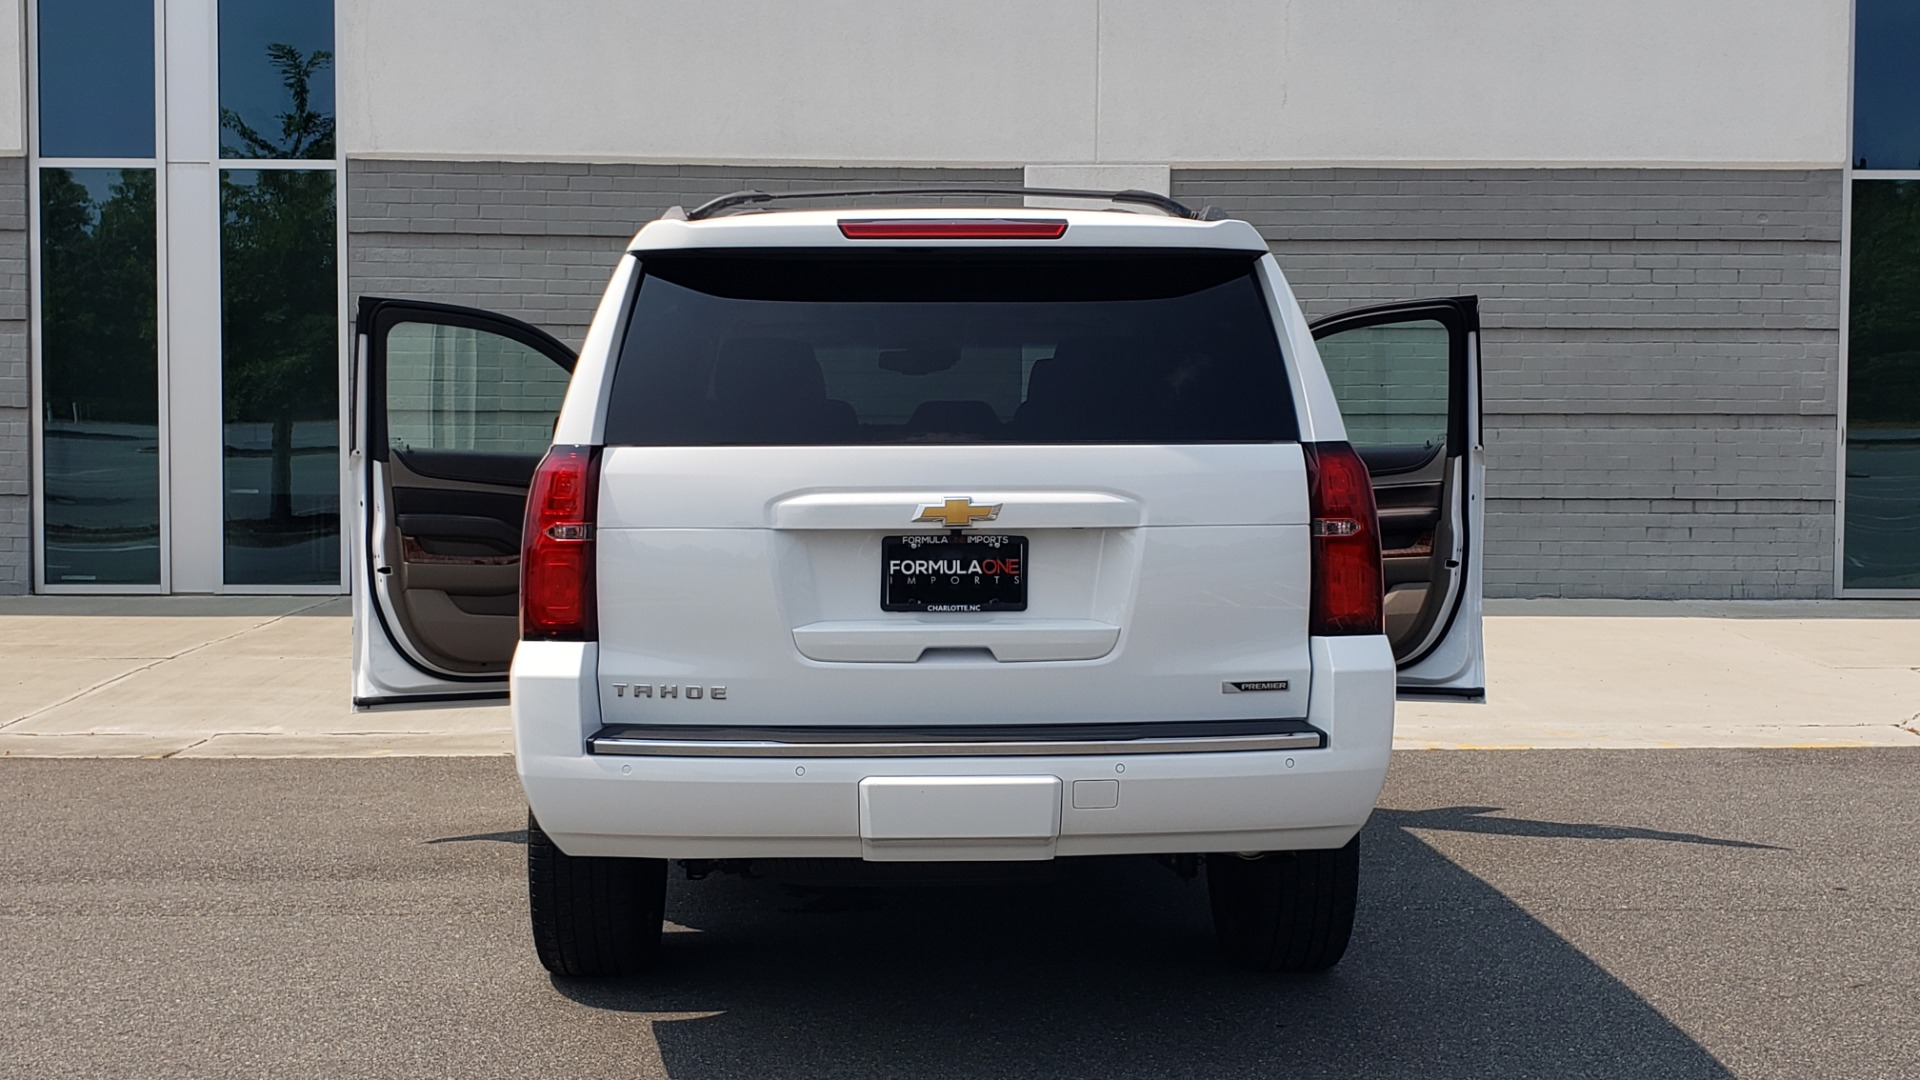 Used 2018 Chevrolet TAHOE PREMIER 4WD / NAV / SUNROOF / BOSE / 3-ROW / HUD / REARVIEW for sale $63,995 at Formula Imports in Charlotte NC 28227 30